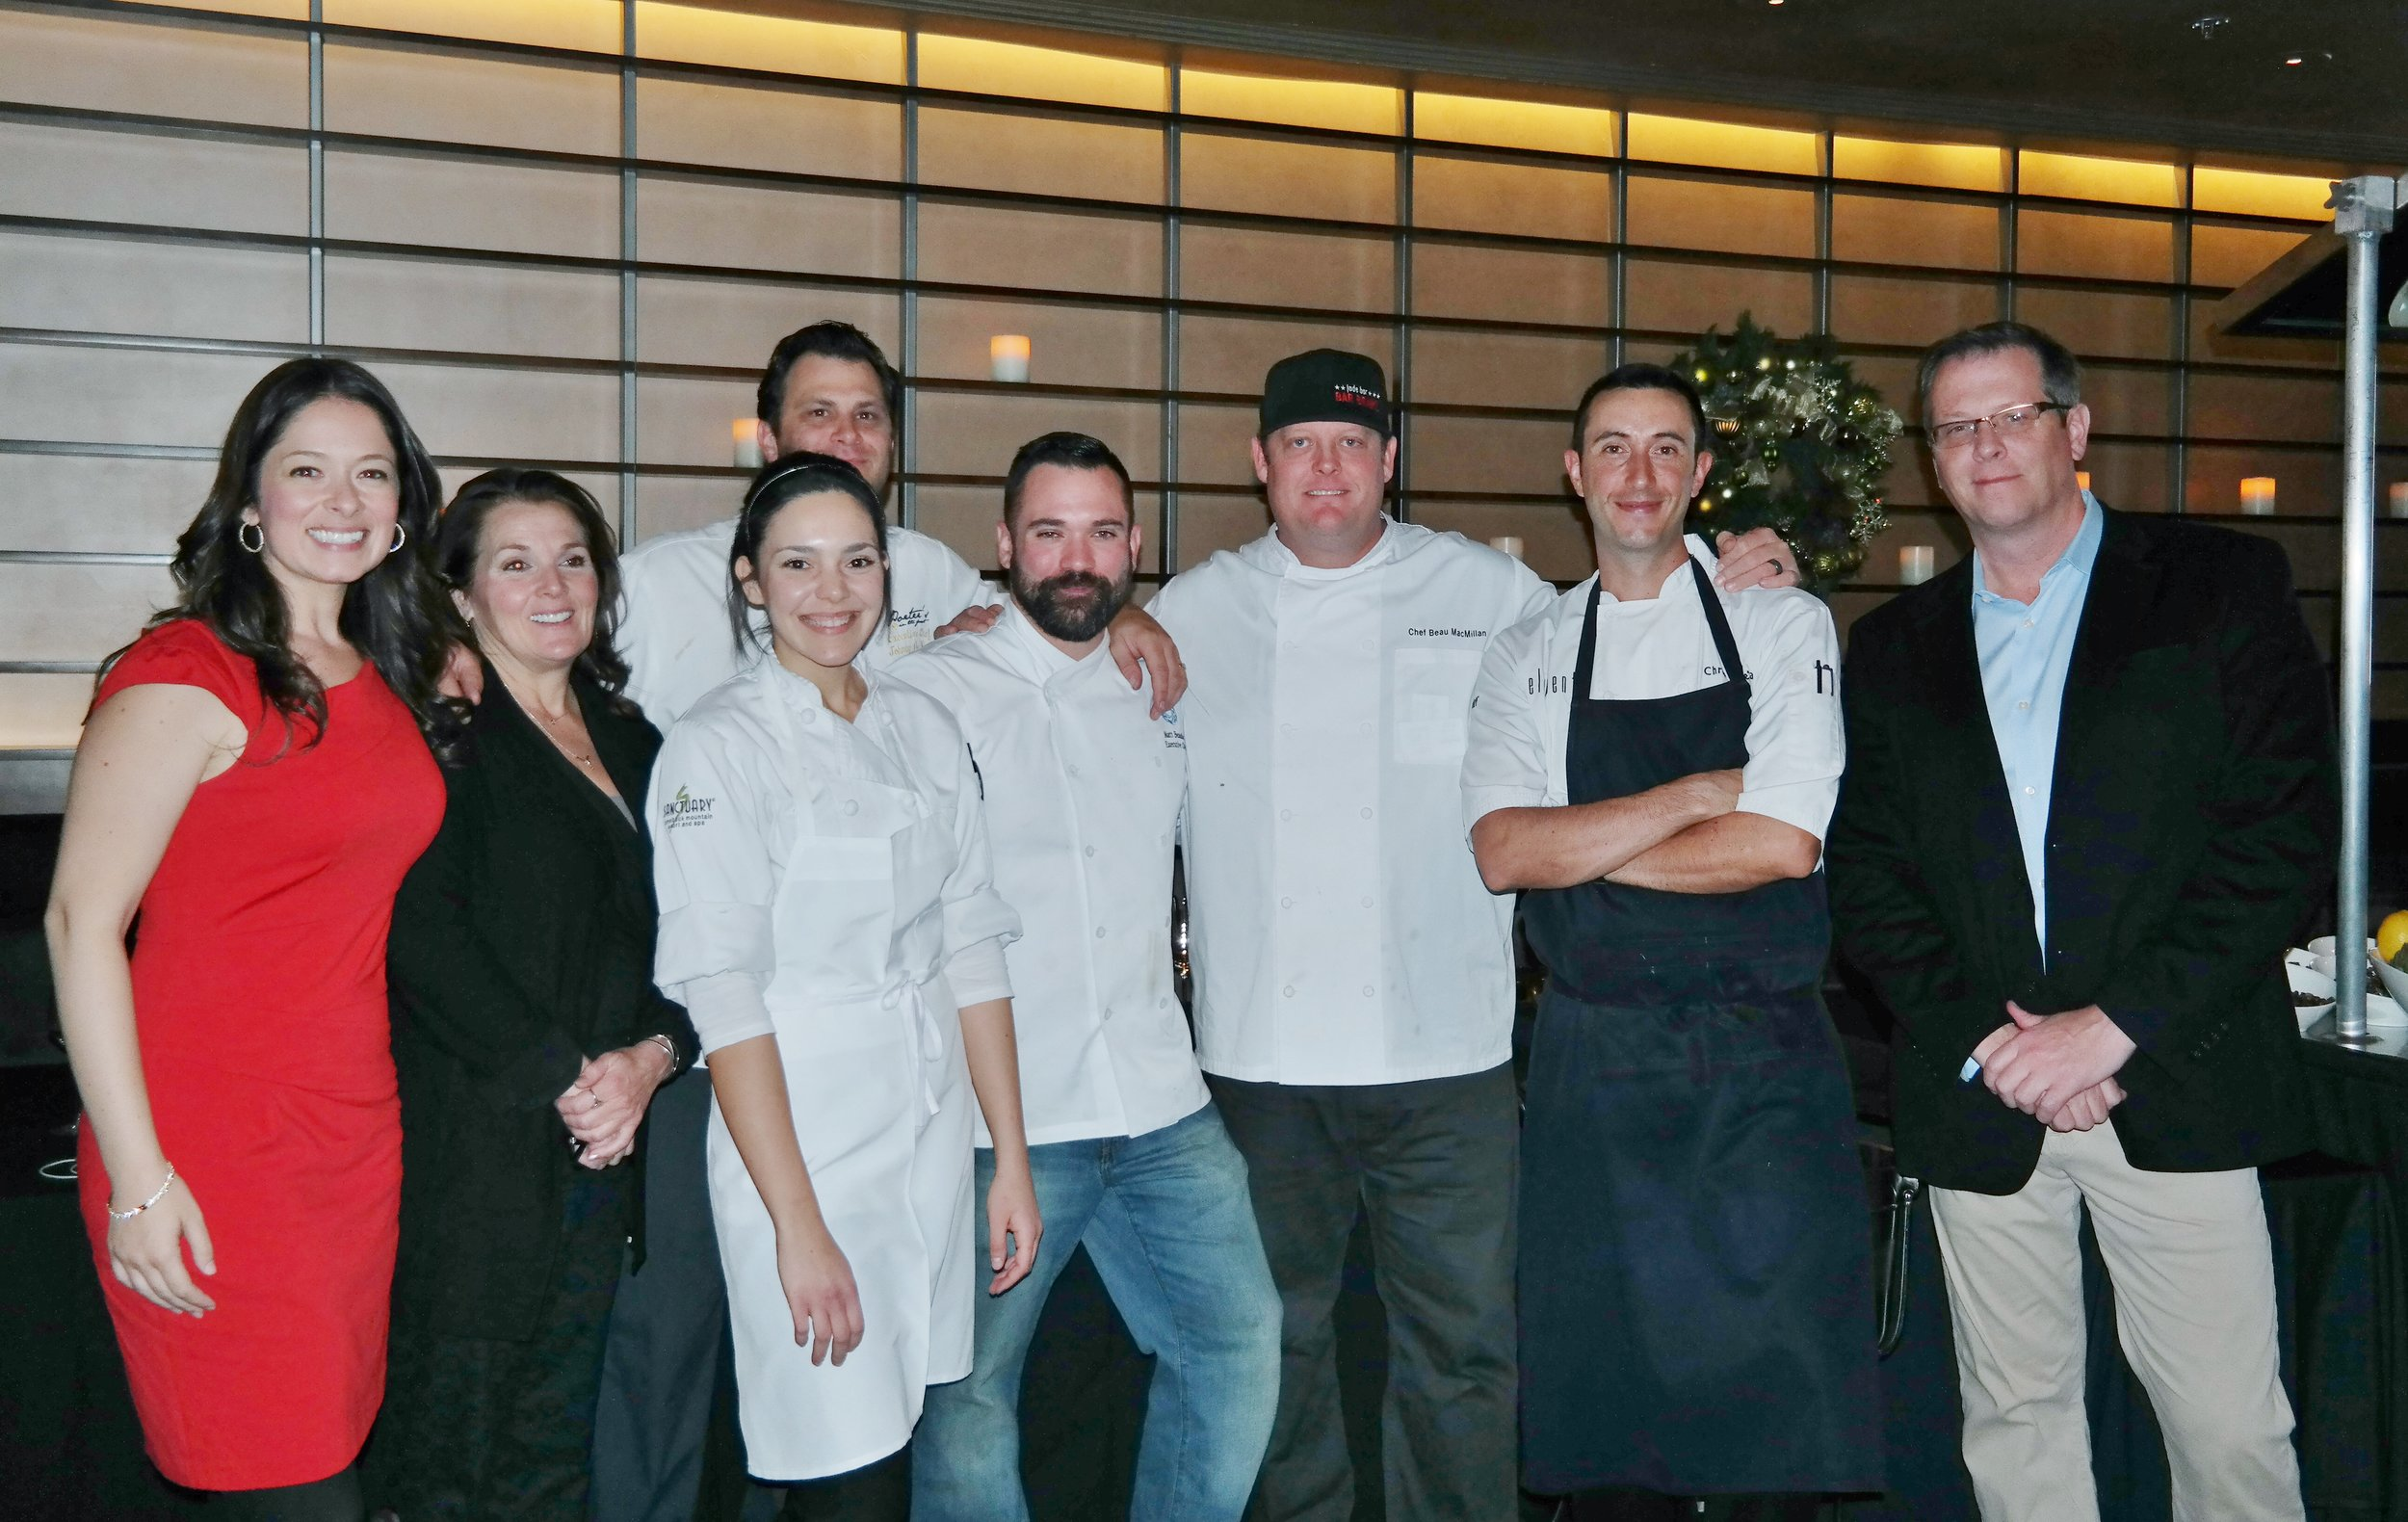 Left to right: Monterey County Communications Manager Jessica Keener,   Executive Director of the Monterey County Vintners & Growers Association Kim Stemler, Pastry Chef Ana Garza, Visiting Monterey chefs Johnny De Vivo and Matthew Beaudin, Executive Chef at the Sanctuary Beau MacMillan, Executive Sous Chef   Chris Schuetta, and Rob O'Keefe, Chief Marketing Officer at Monterey CVB